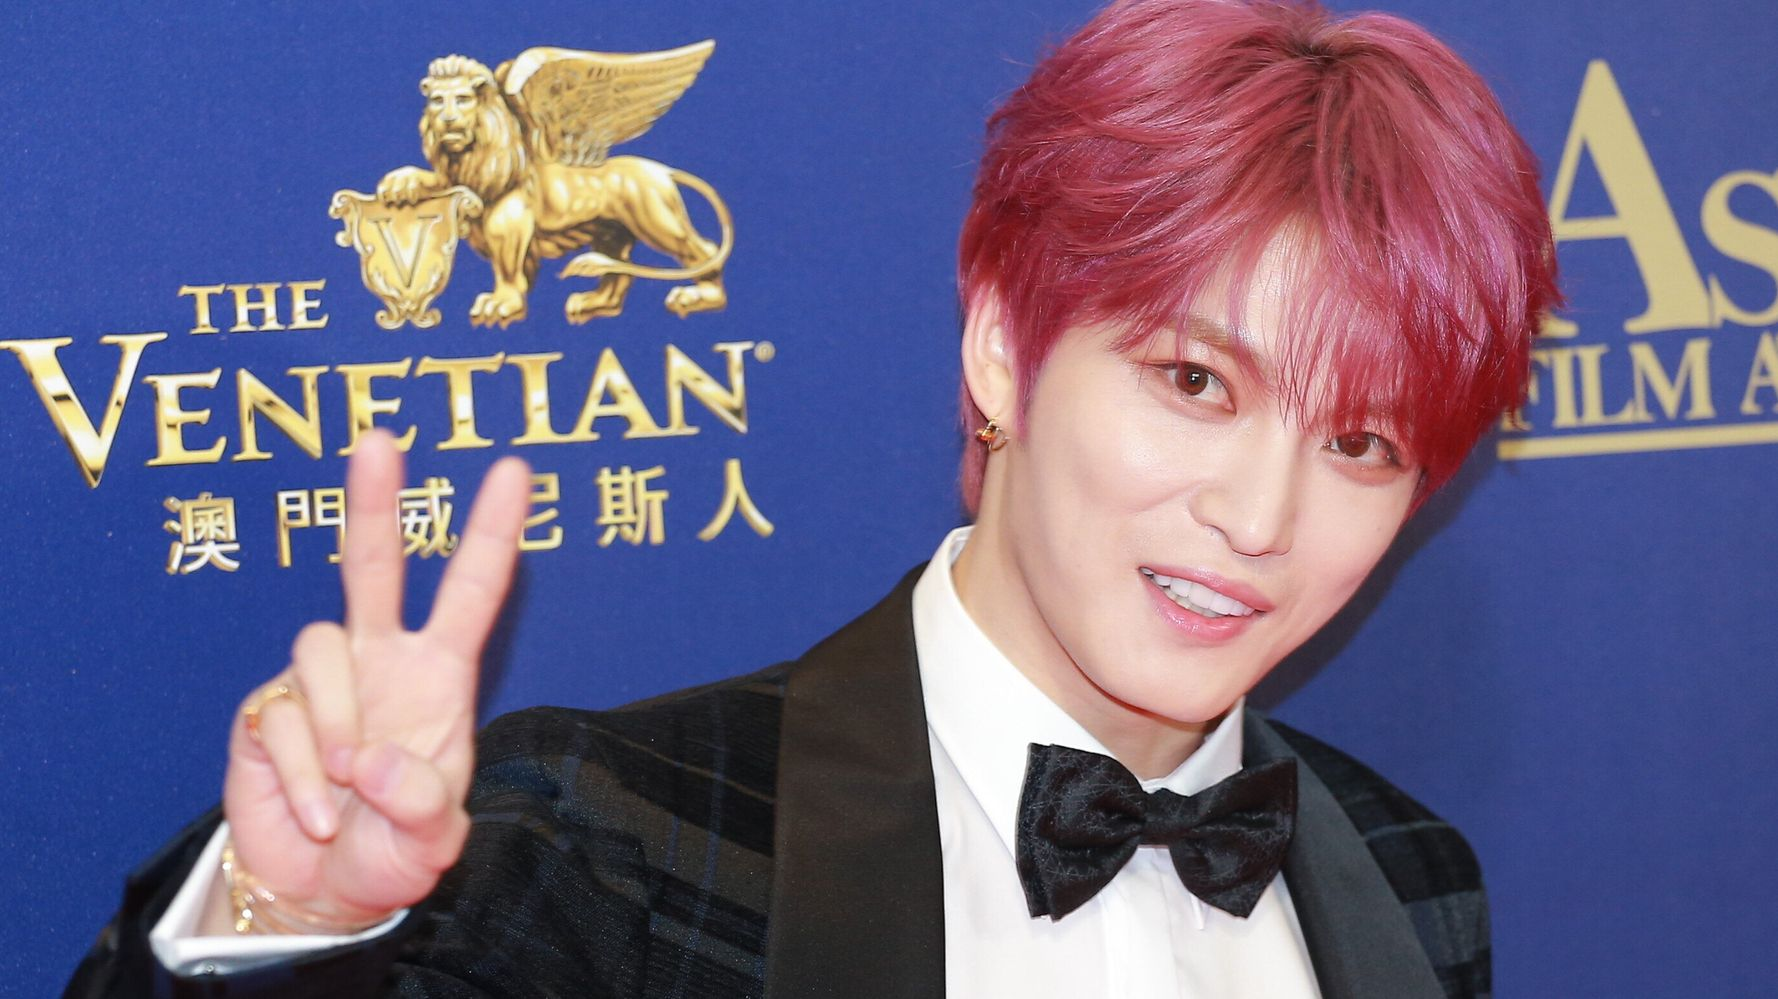 K-Pop Star's Coronavirus April Fools' Day Stunt Backfires